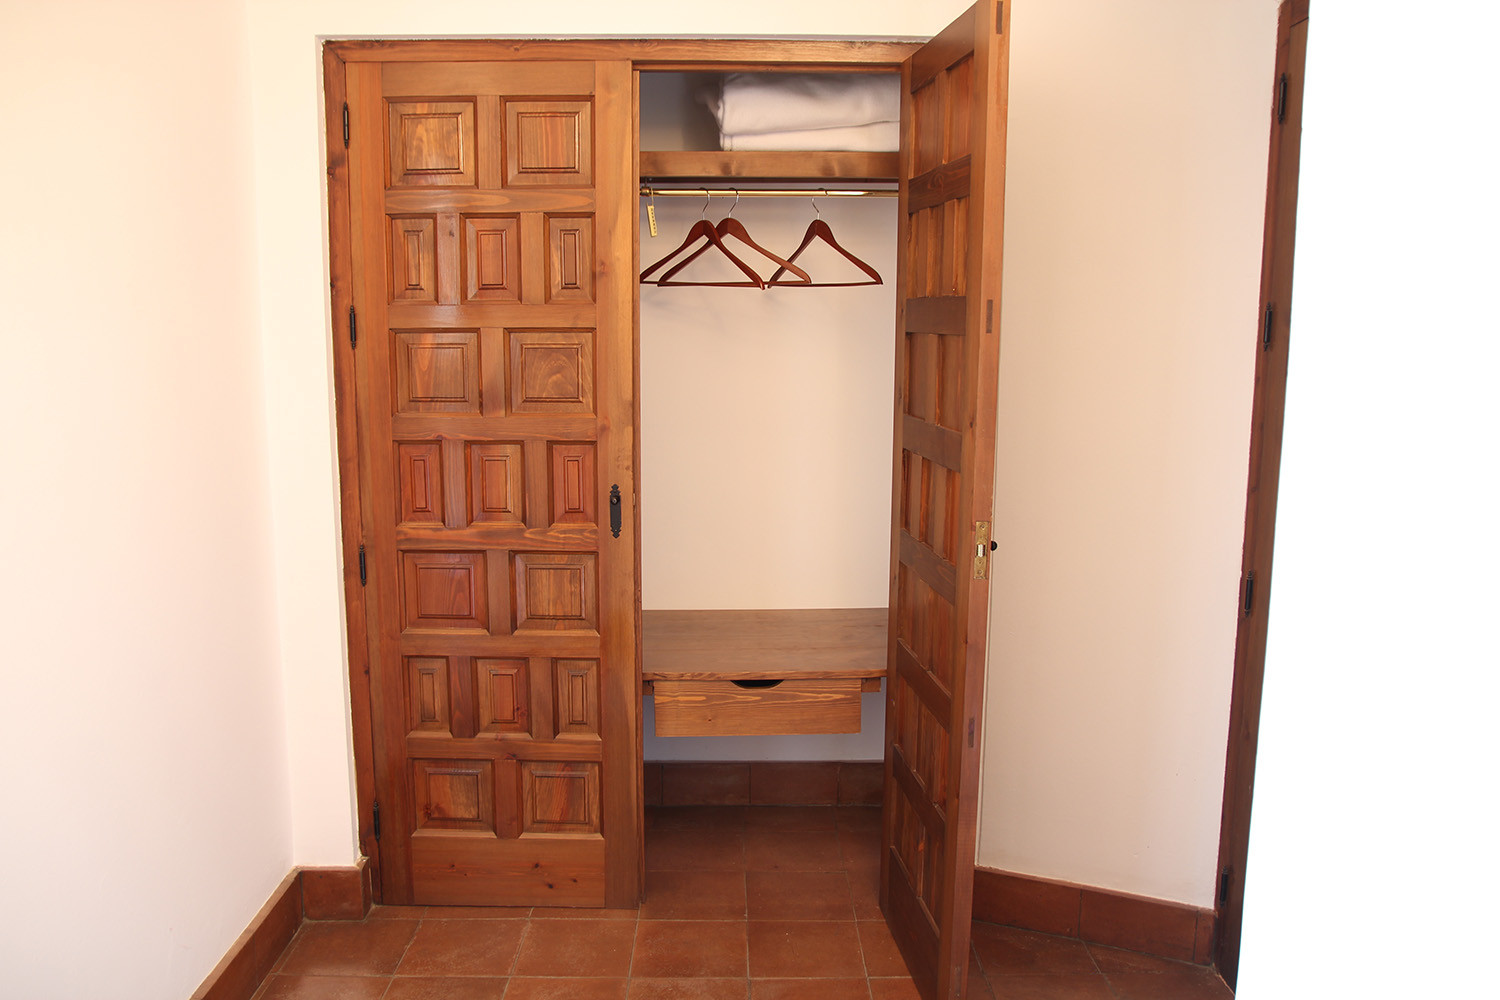 The wardrobe in the portal